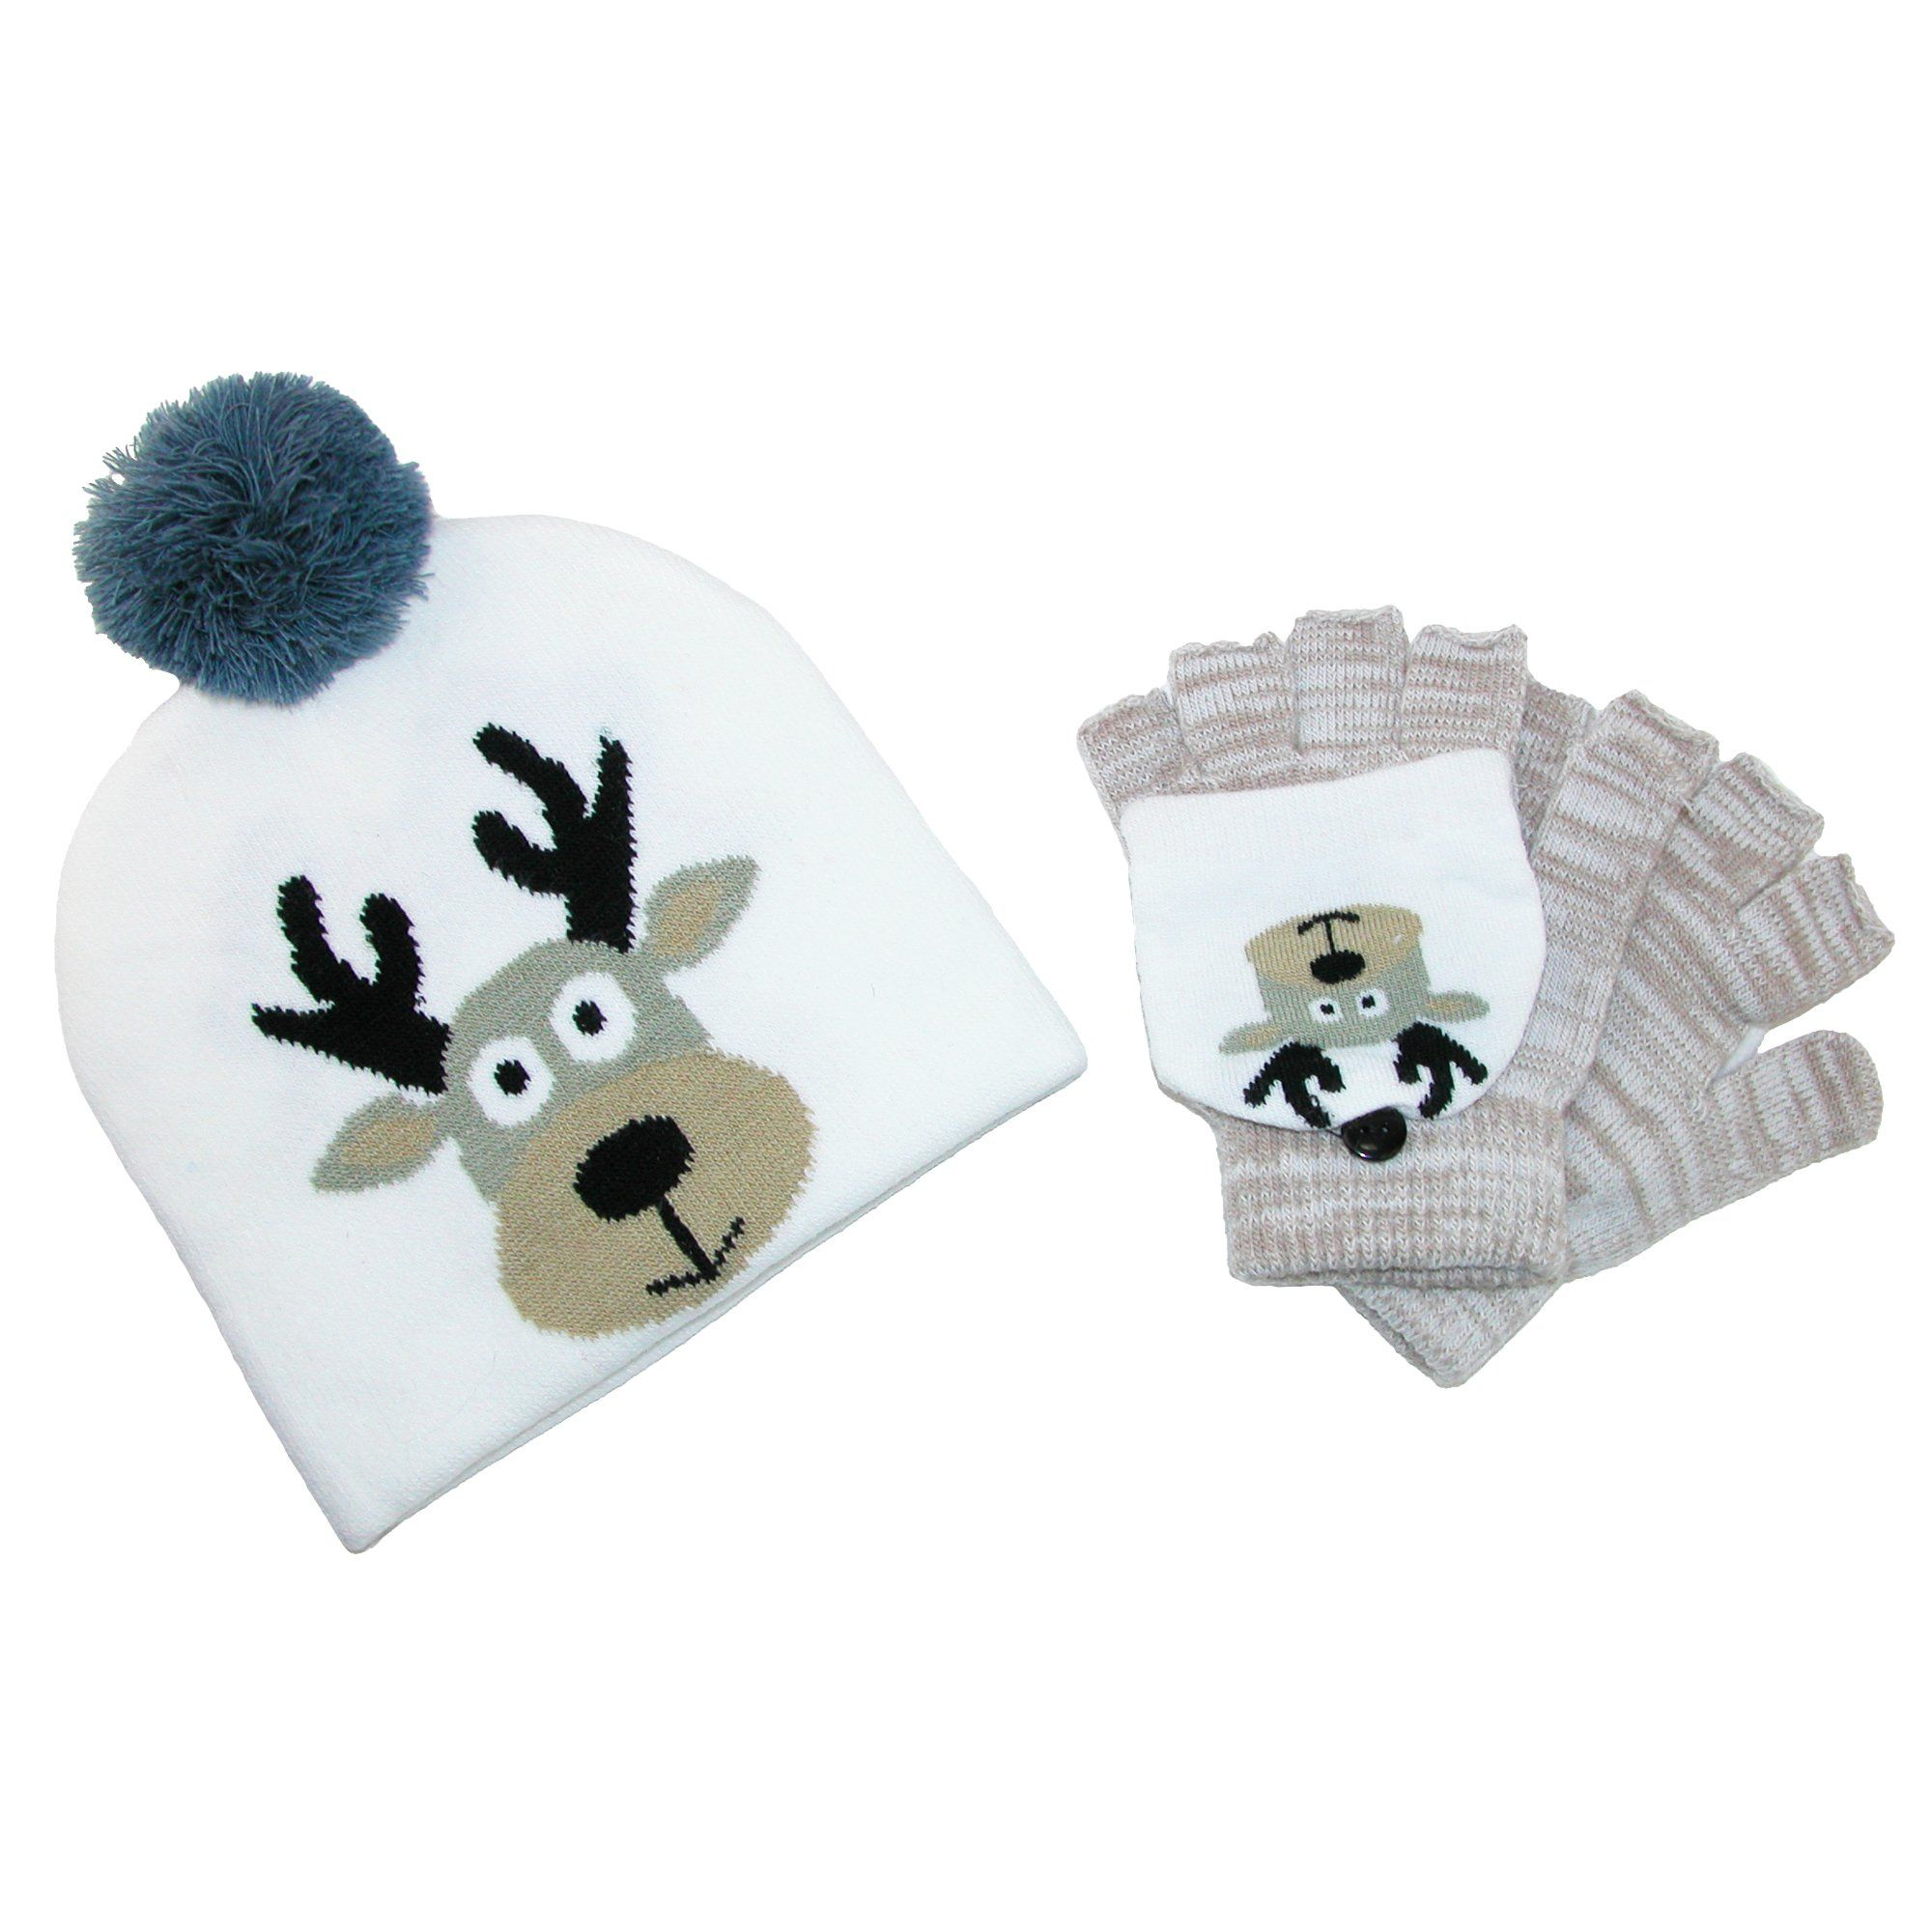 dc21118b81f CTM Kid s Winter Themed Hat and Convertible Mitten Set